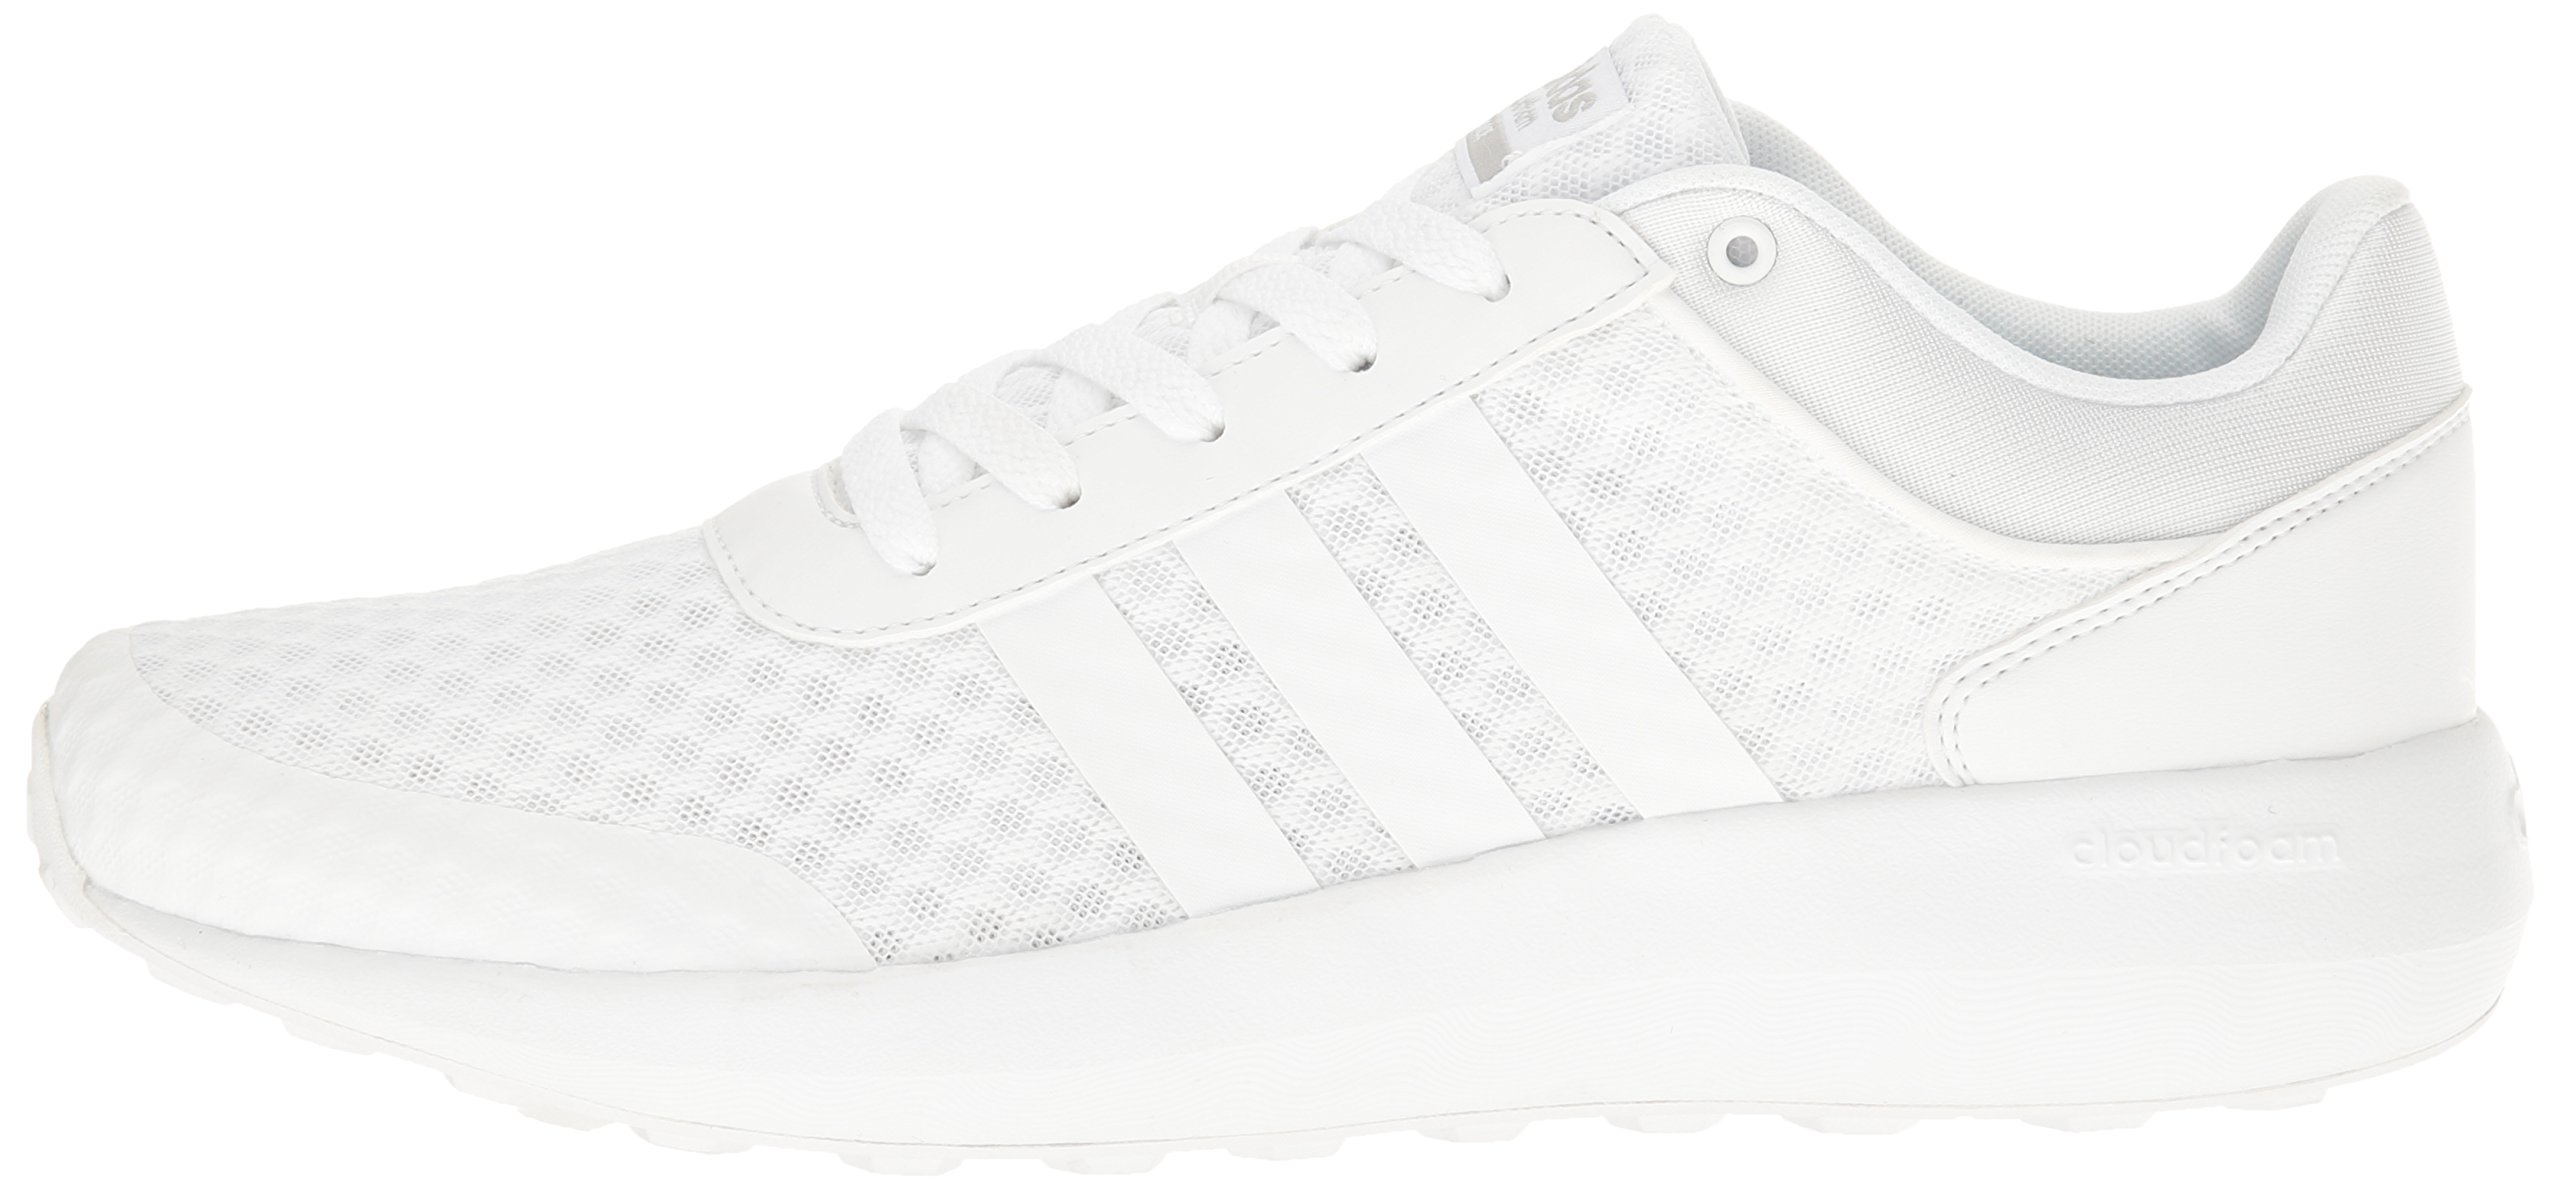 adidas Men's Cloudfoam Race Running Shoe, White/Clear Onix, 9 D-Medium by adidas (Image #5)